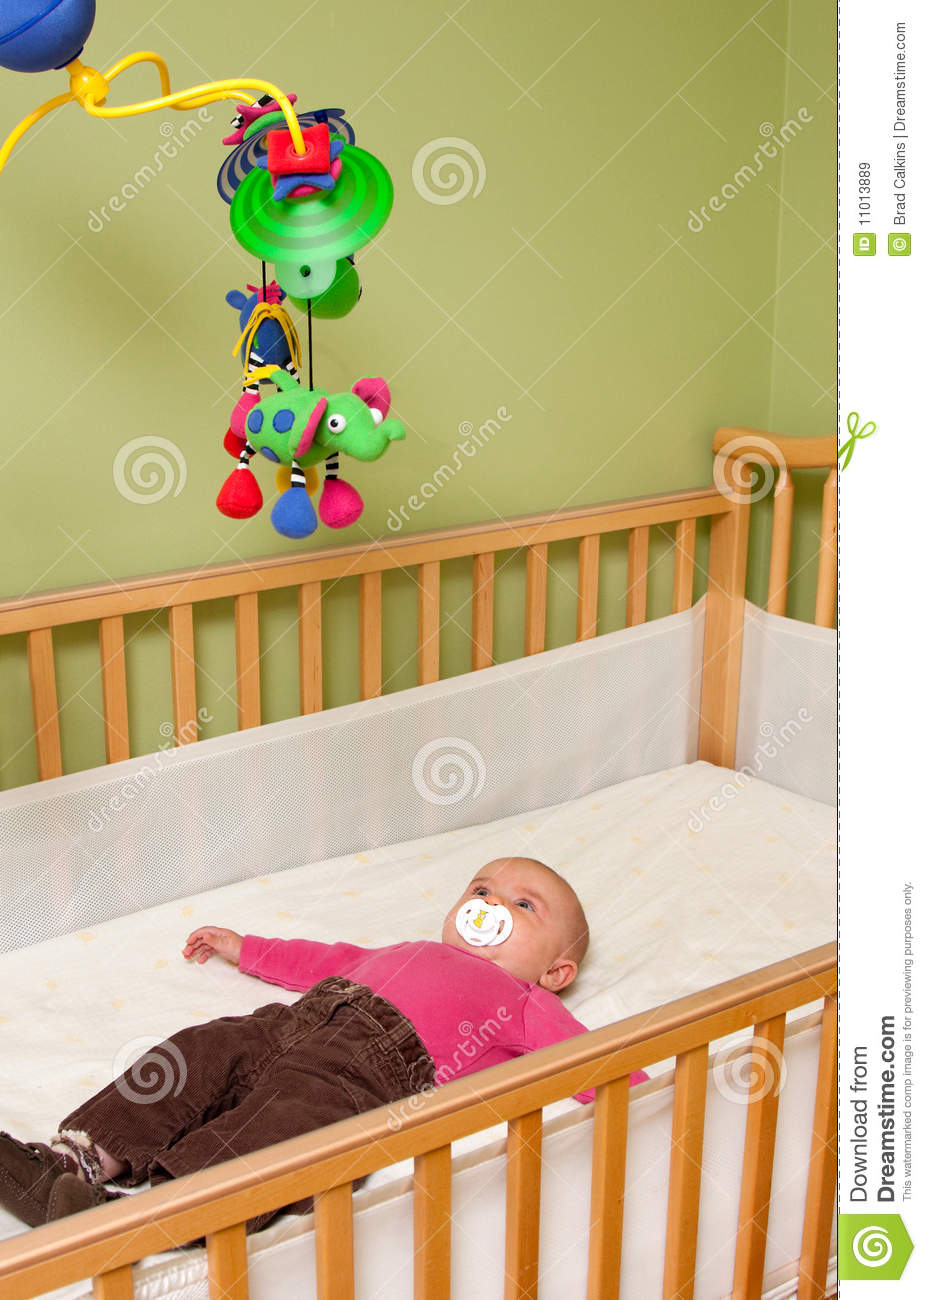 baby in crib royalty free stock images  image  - baby in crib royalty free stock images